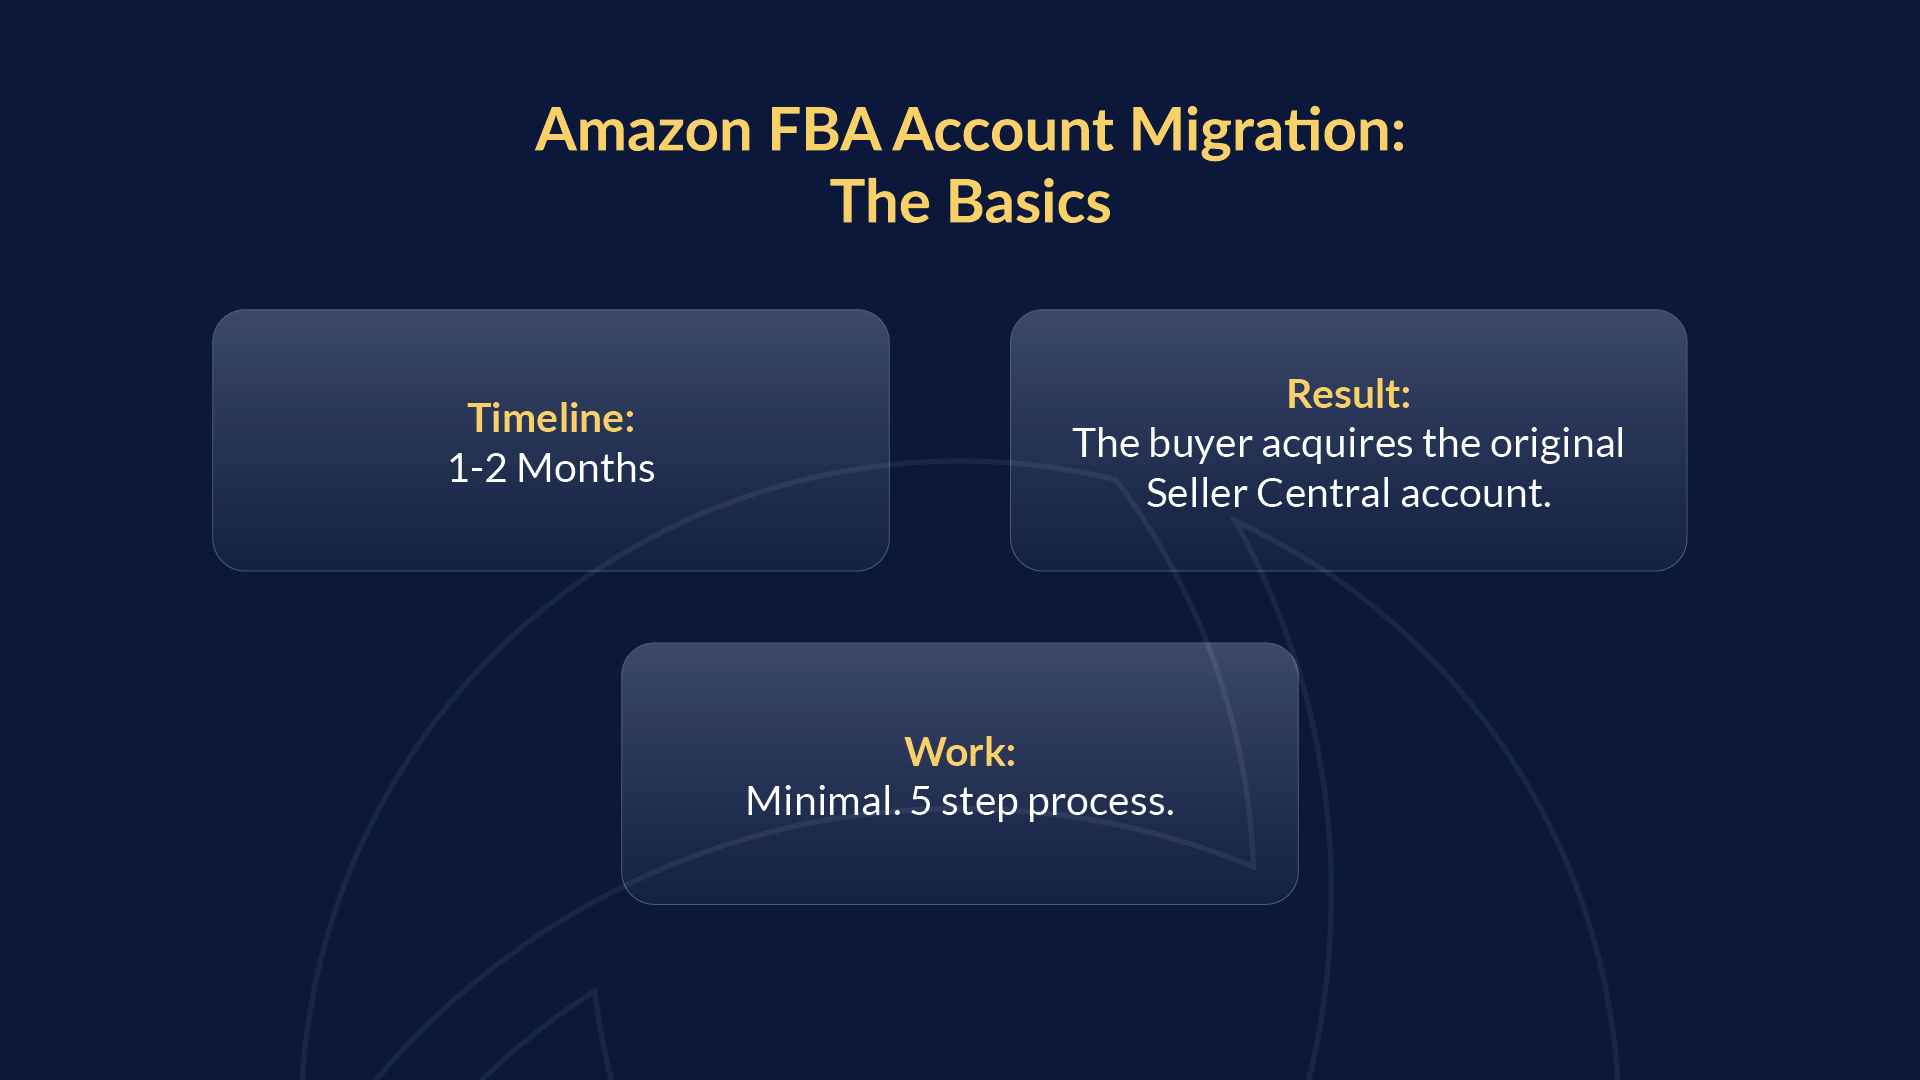 Breakdown of the timeline for Amazon FBA Account Migration.